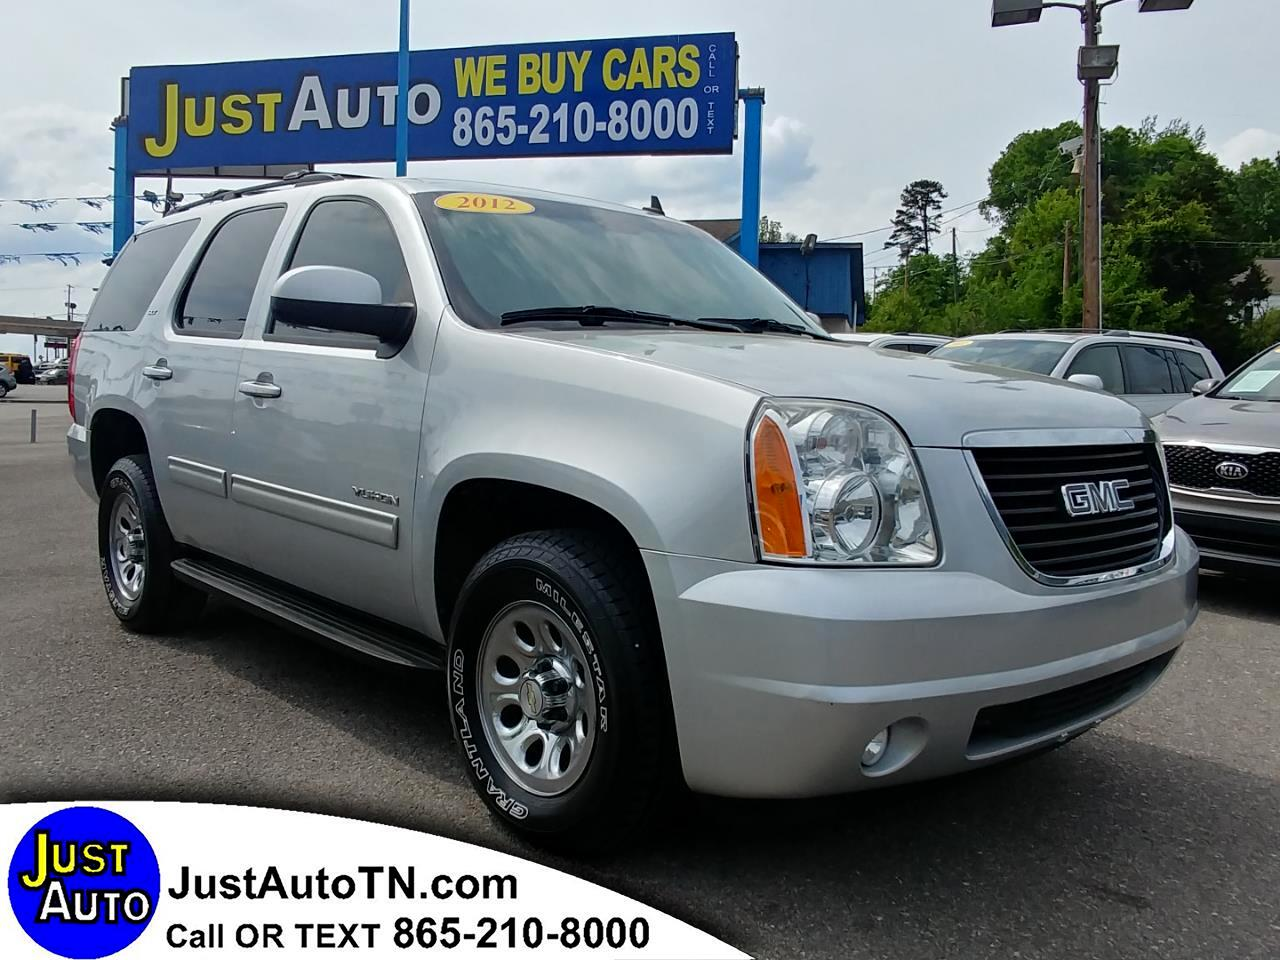 Cars For Sale Knoxville Tn >> Used Cars For Sale Knoxville Tn 37912 Just Auto Leasing